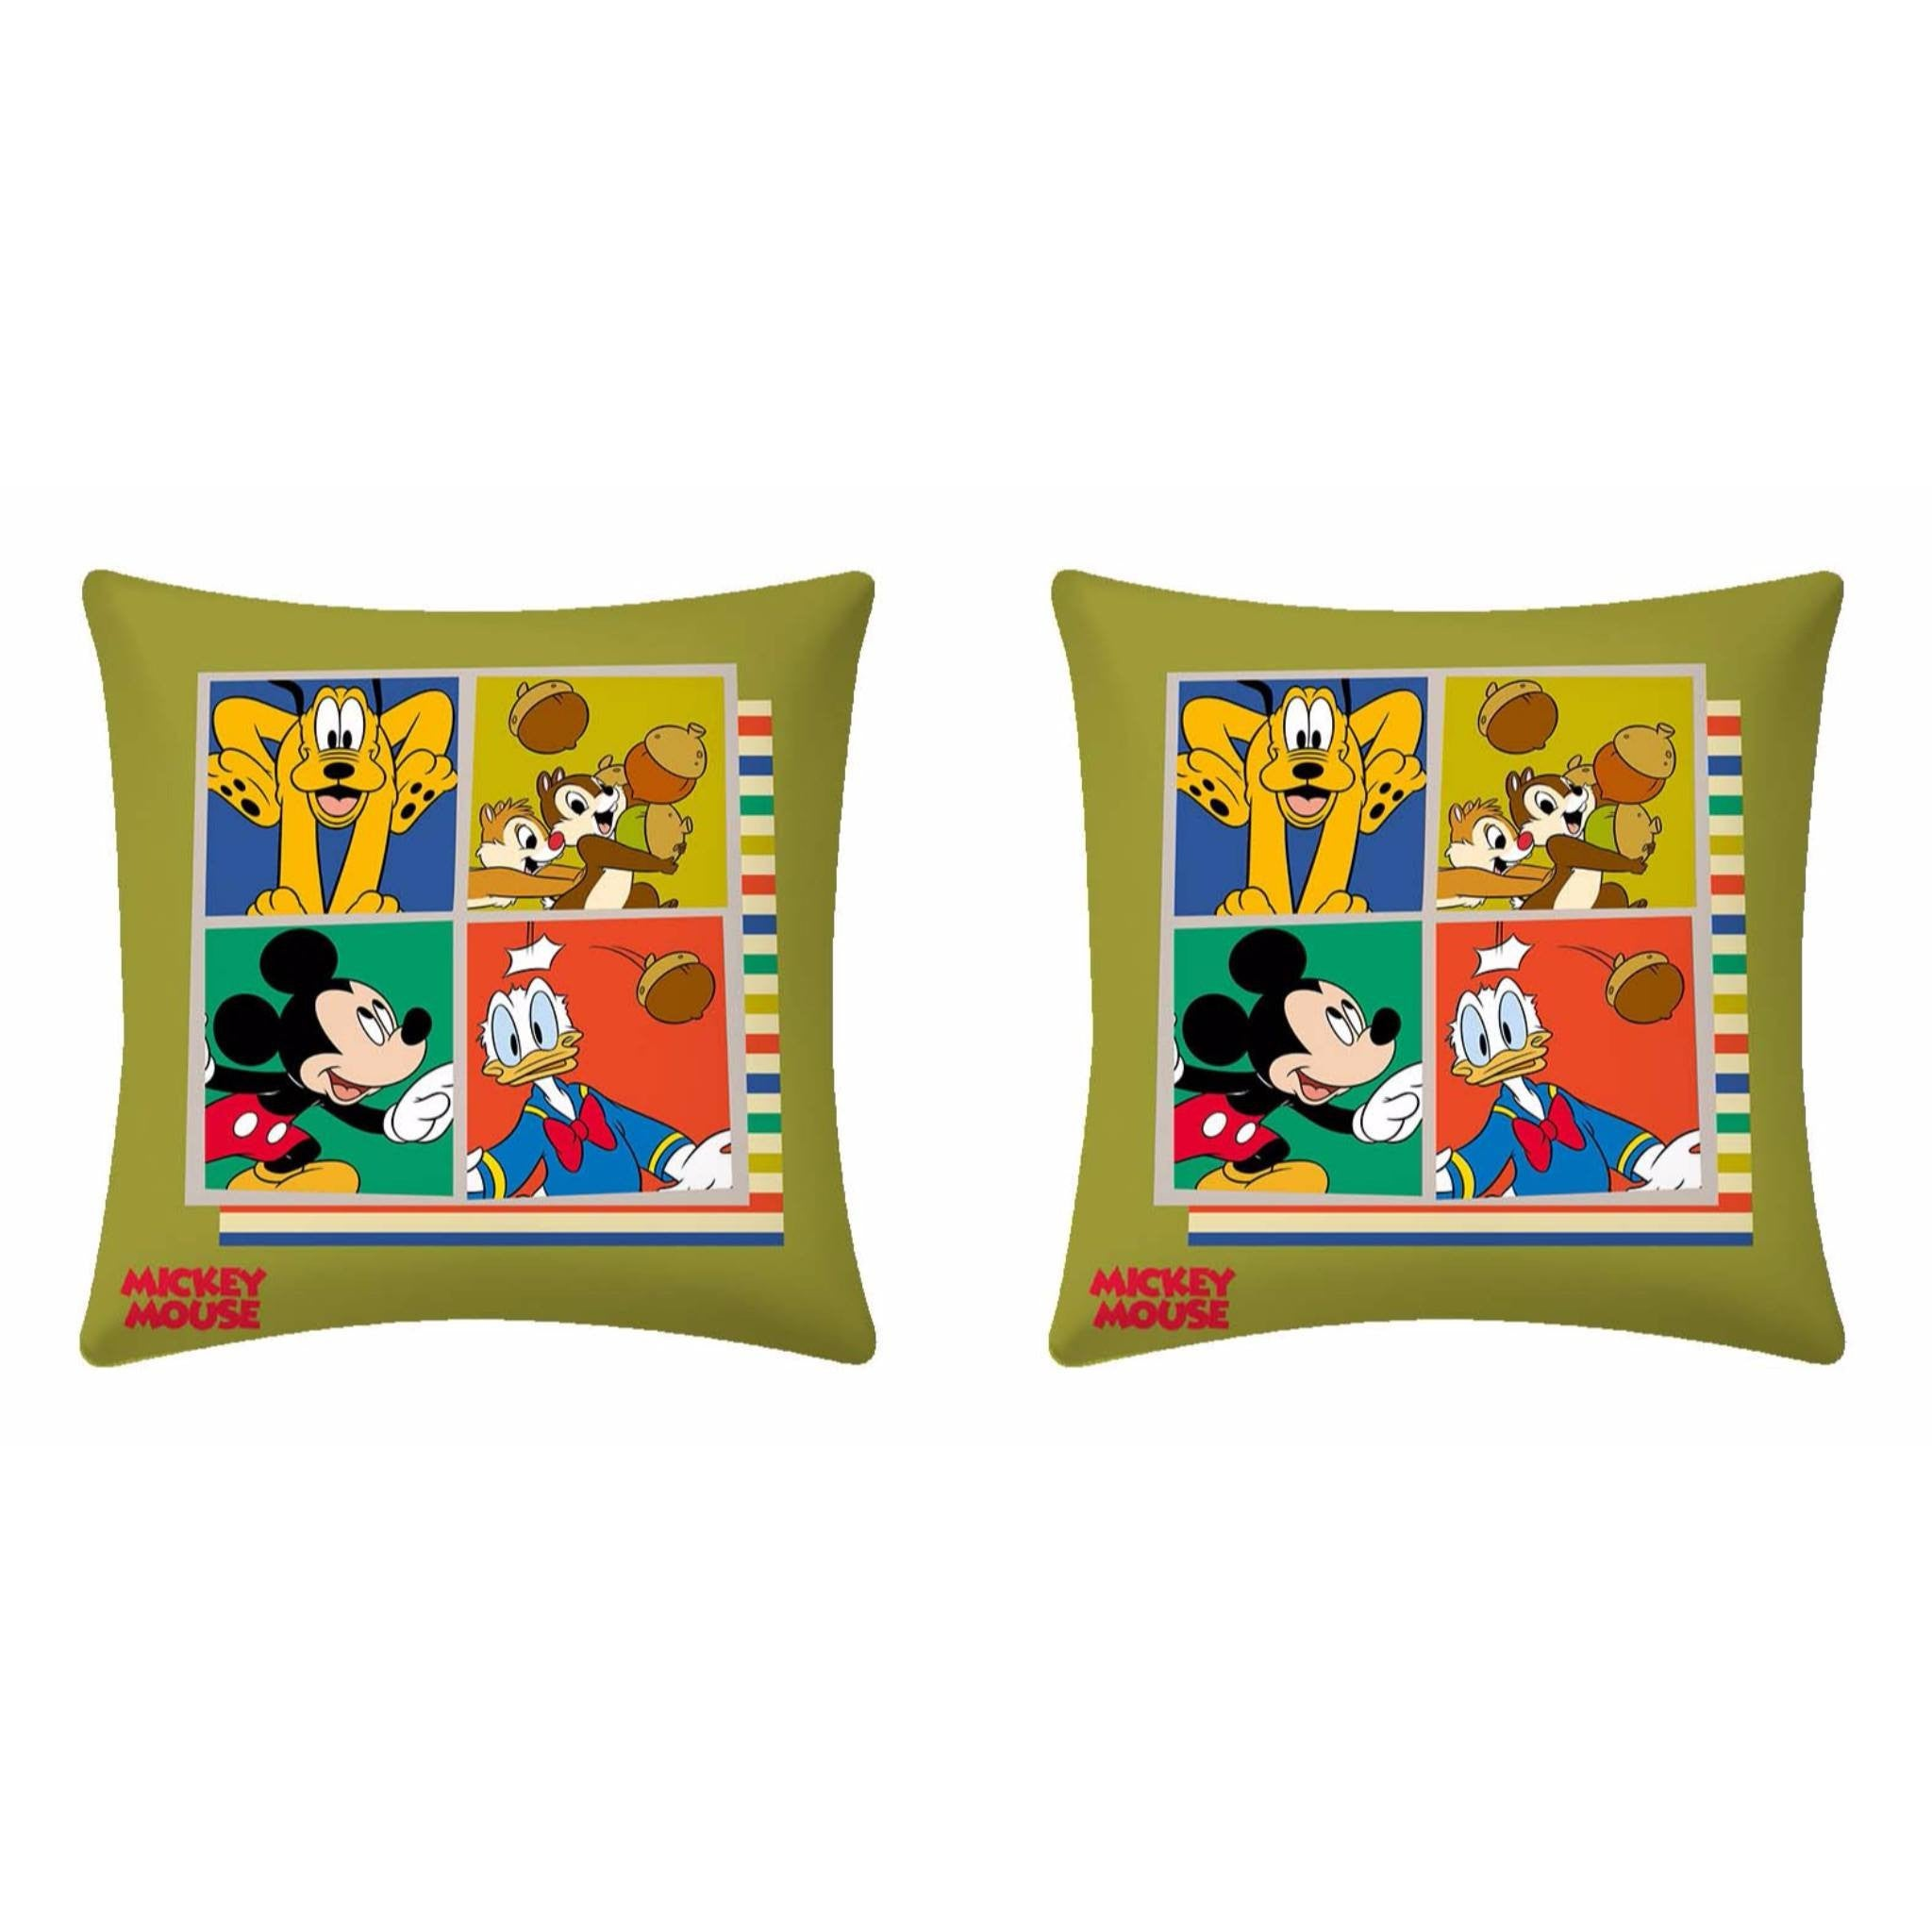 Disney Mickey Mouse Family Cushion - 2 piece pack - Über Urban Cushion